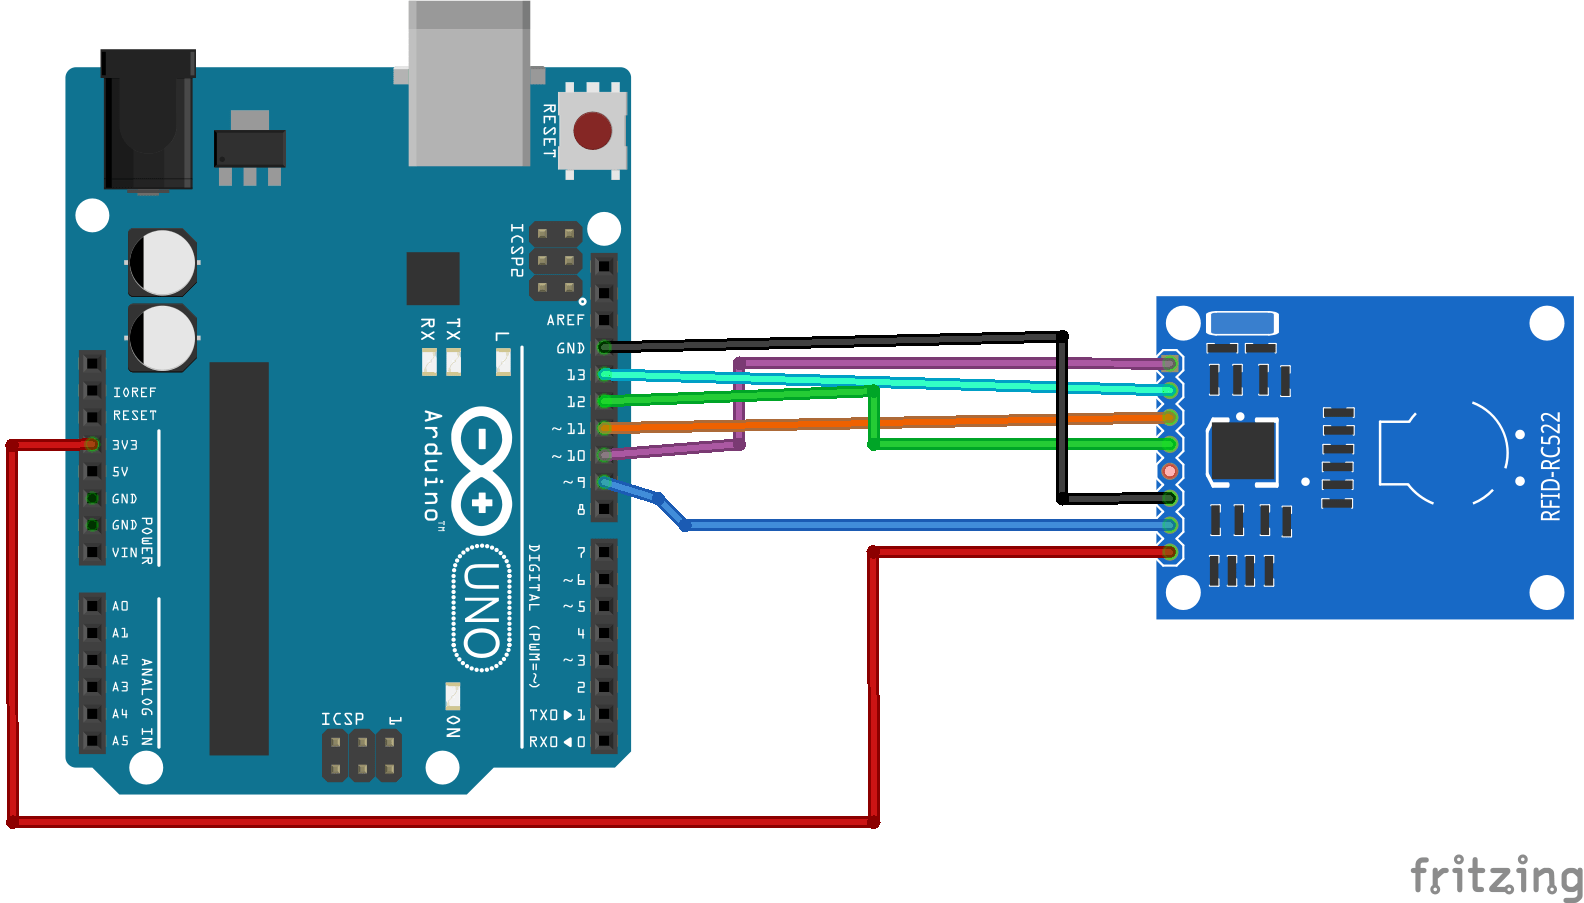 Mfrc522 Rfid Reader With Arduino Tutorial Random Nerd Tutorials Circuit Basics Your Students And Have Them Build A Closed Reading Data From Tag After Having The